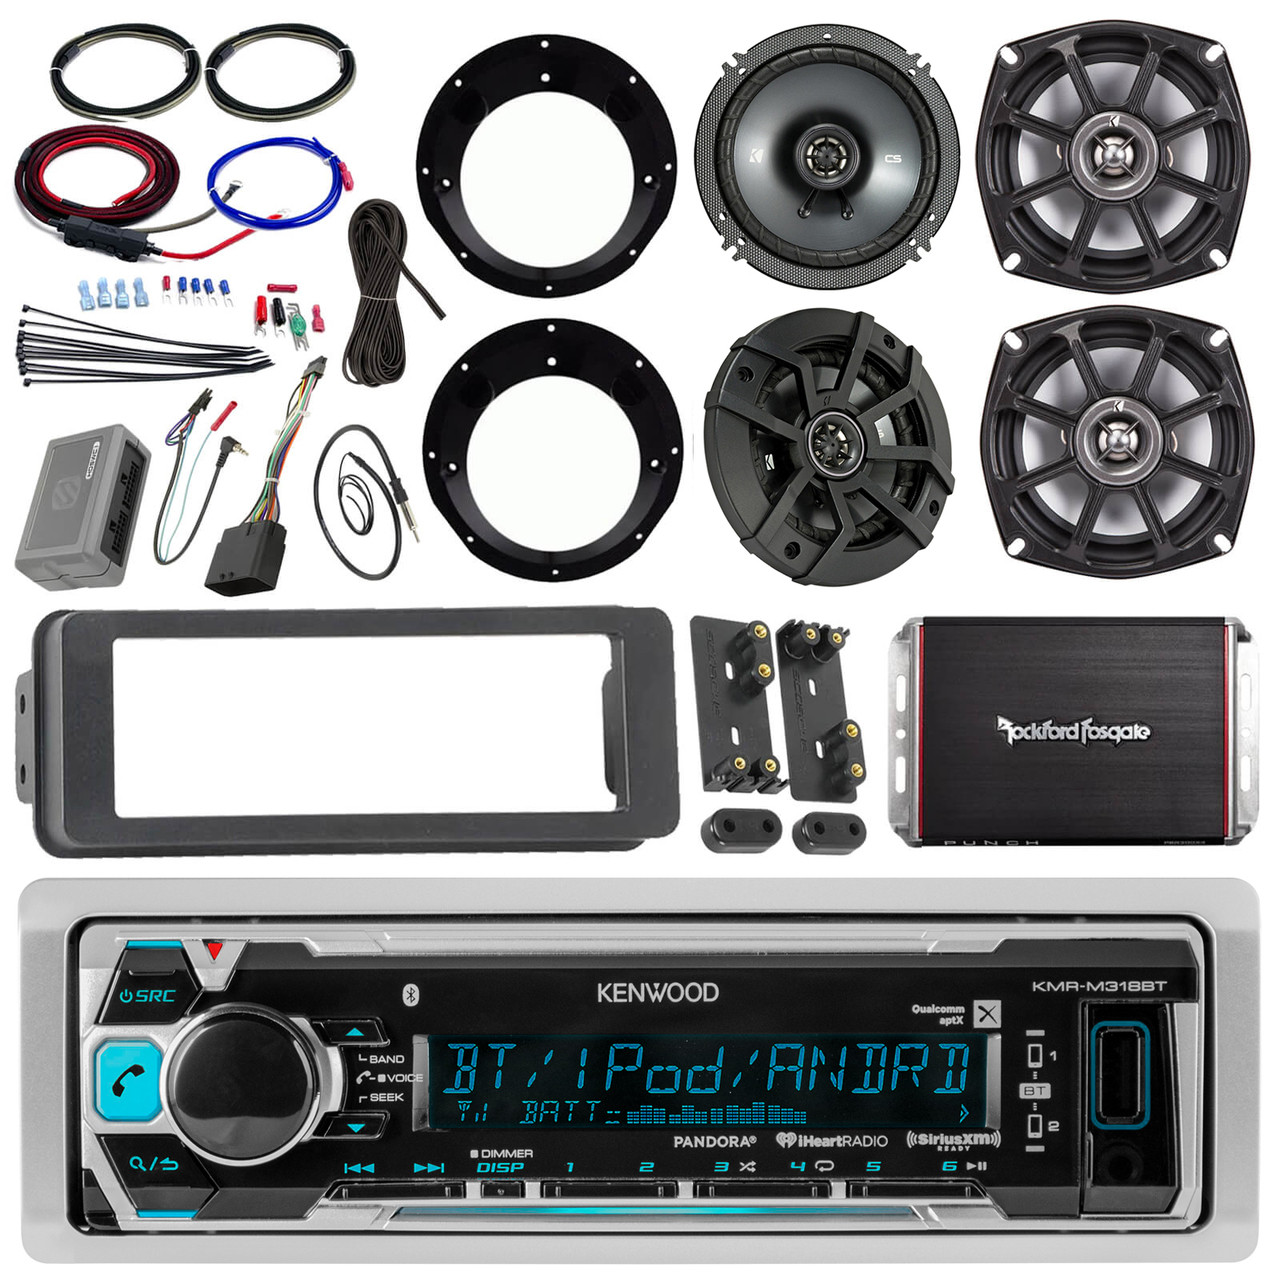 small resolution of kenwood kmrm318bt stereo receiver bundle 2x kicker 6 5 speaker 2 wiring diagram moreover 2 channel 4 ohm speakers wiring on 12 kenwood